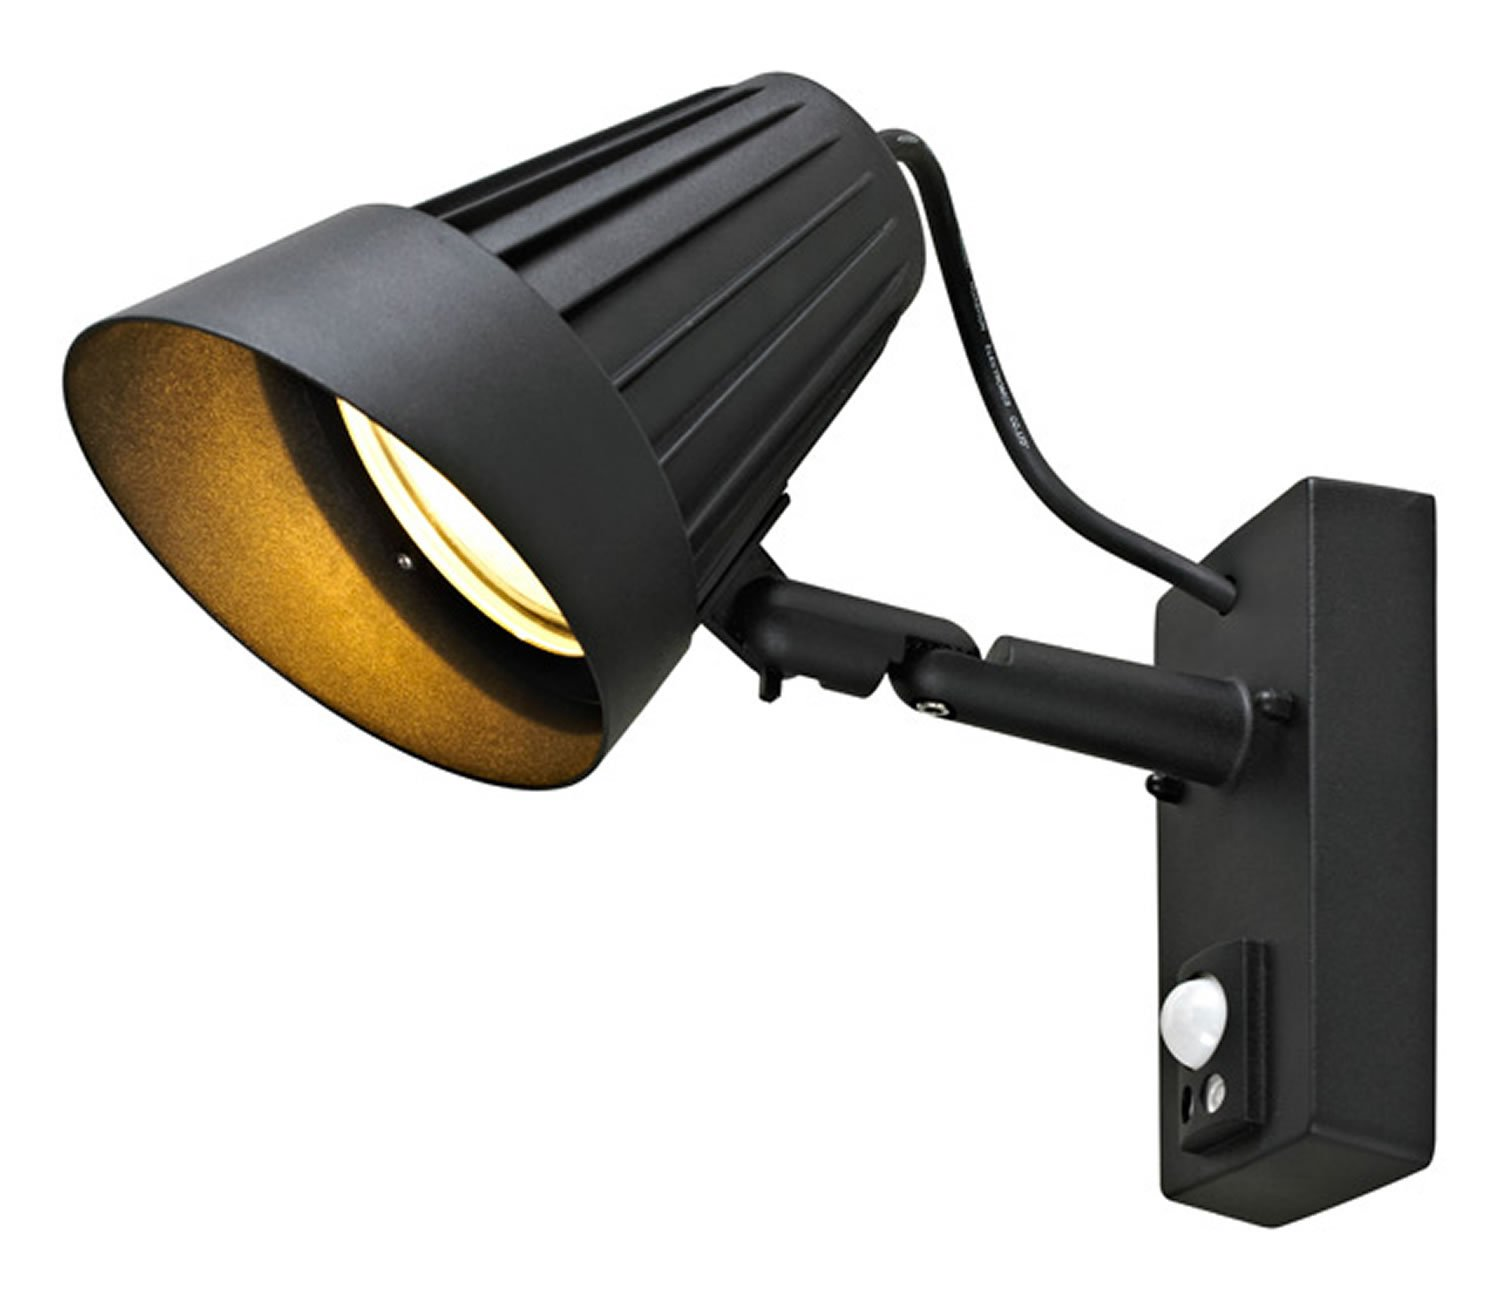 Blooma Heracles Outdoor Wall Spotlight With Pir Sensor Large Black Wiring Diagram Uk Exterior Lighting Adjustable Garden Lamp 42w 625 Lumen Ip44 Mains Operated Outside